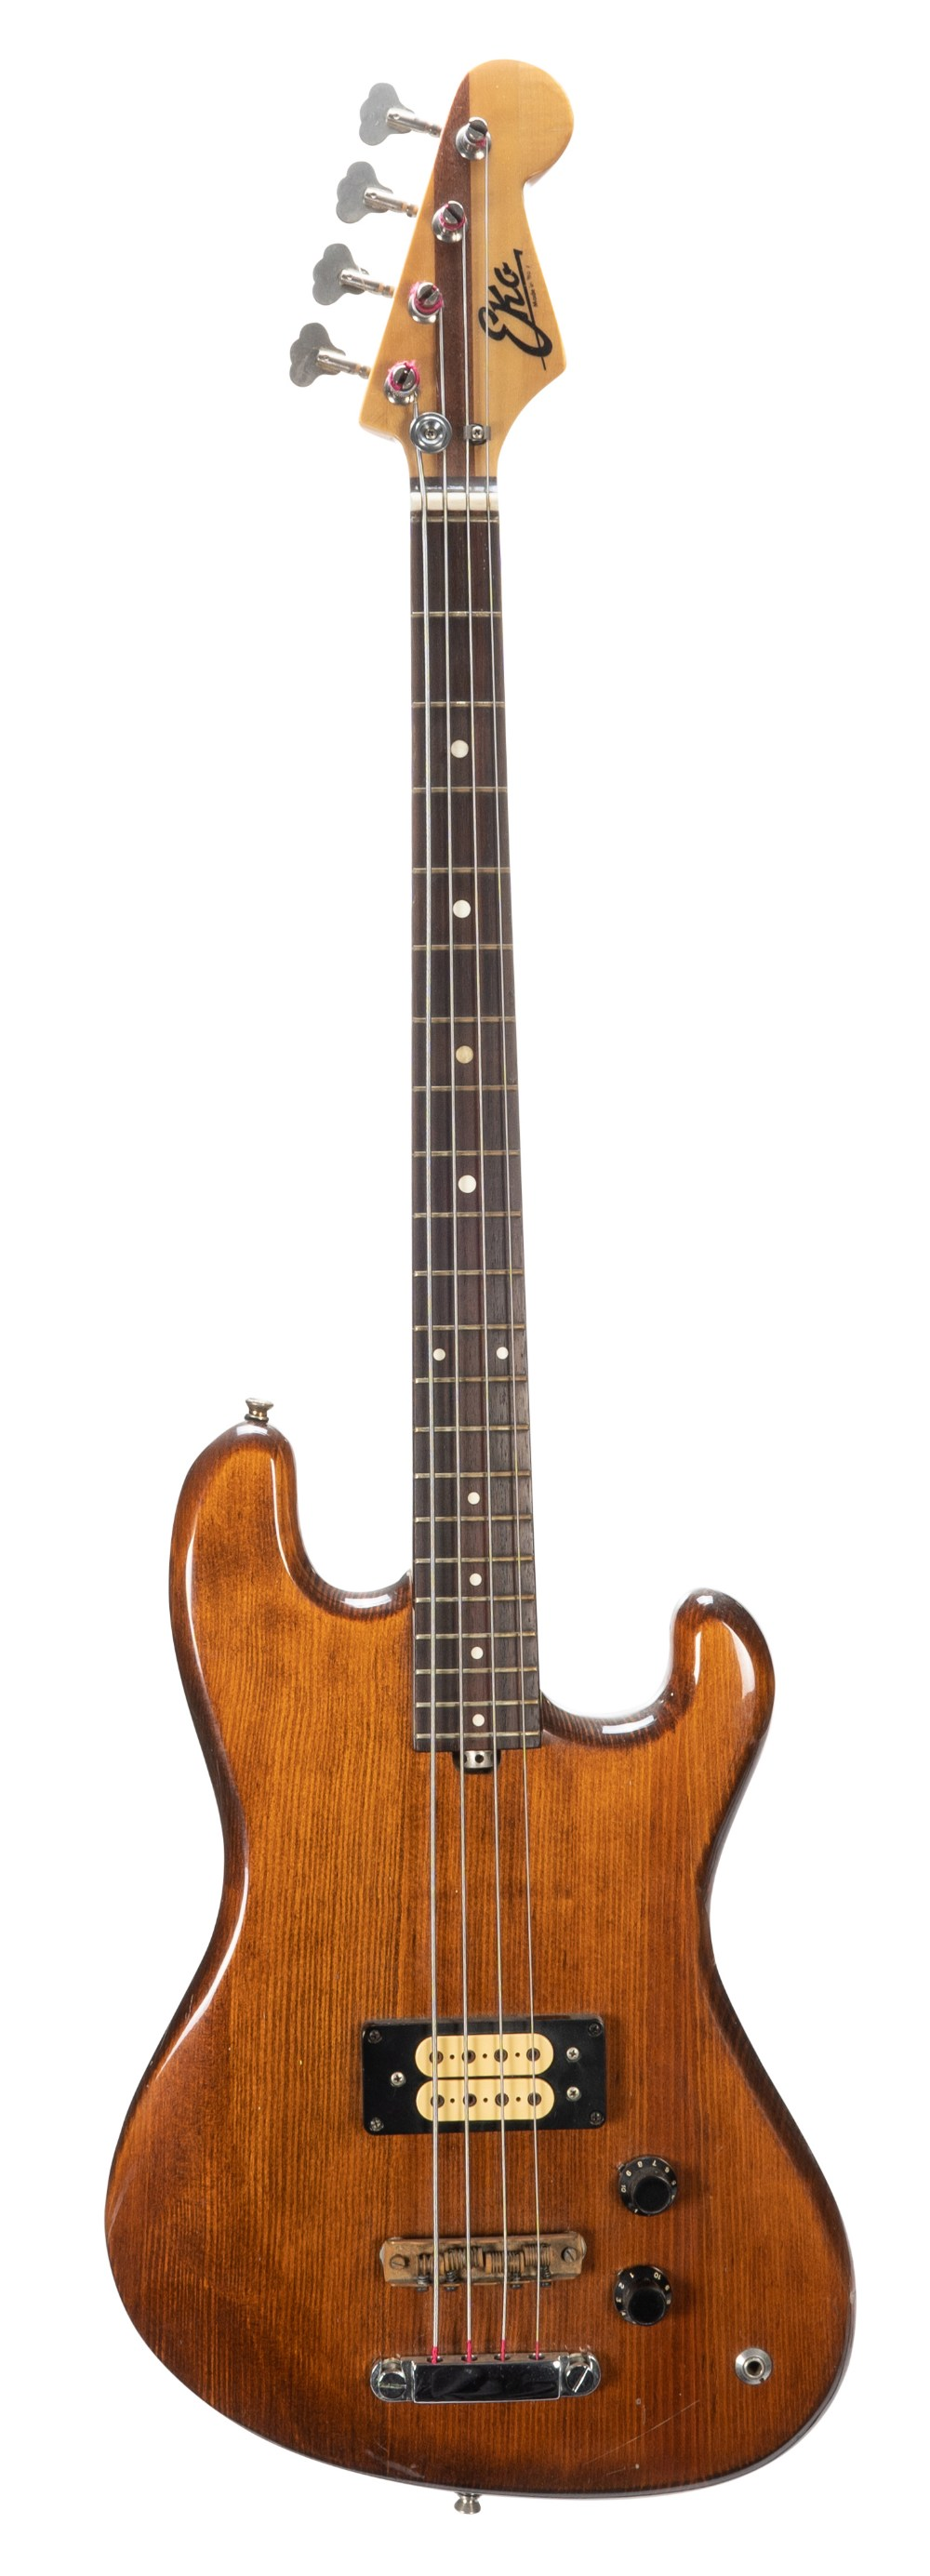 1980s Eko B.02 bass guitar, made in Italy; Finish: brown, light surface scratches and dings;